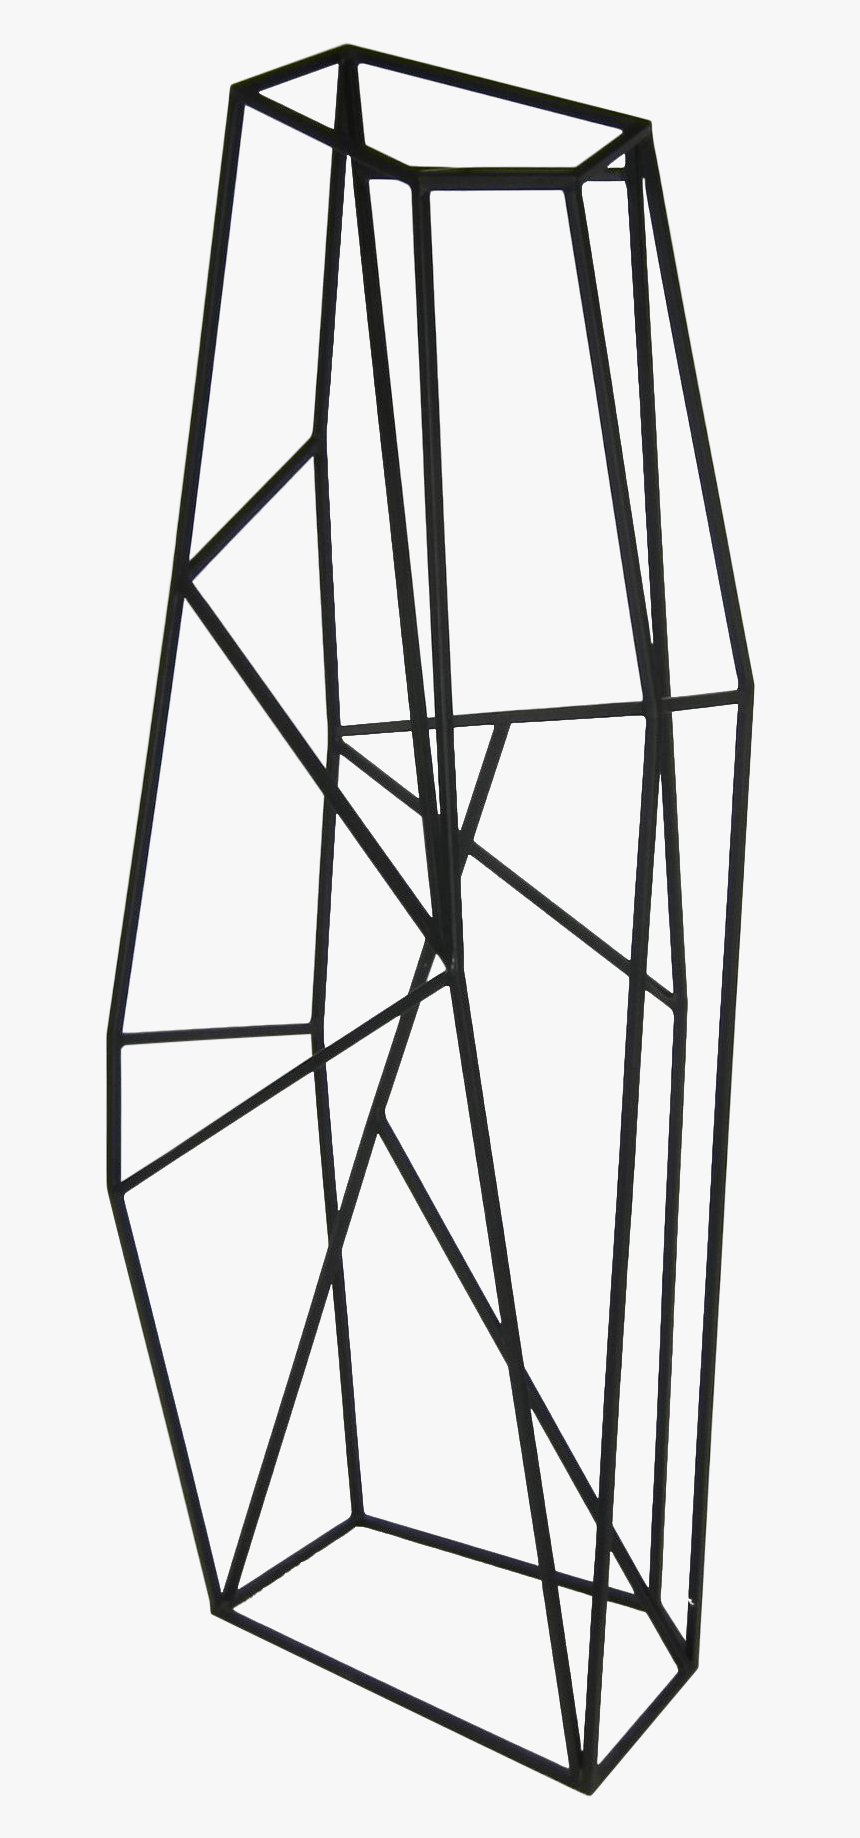 Home Decor Geometric Sculptures, HD Png Download, Free Download